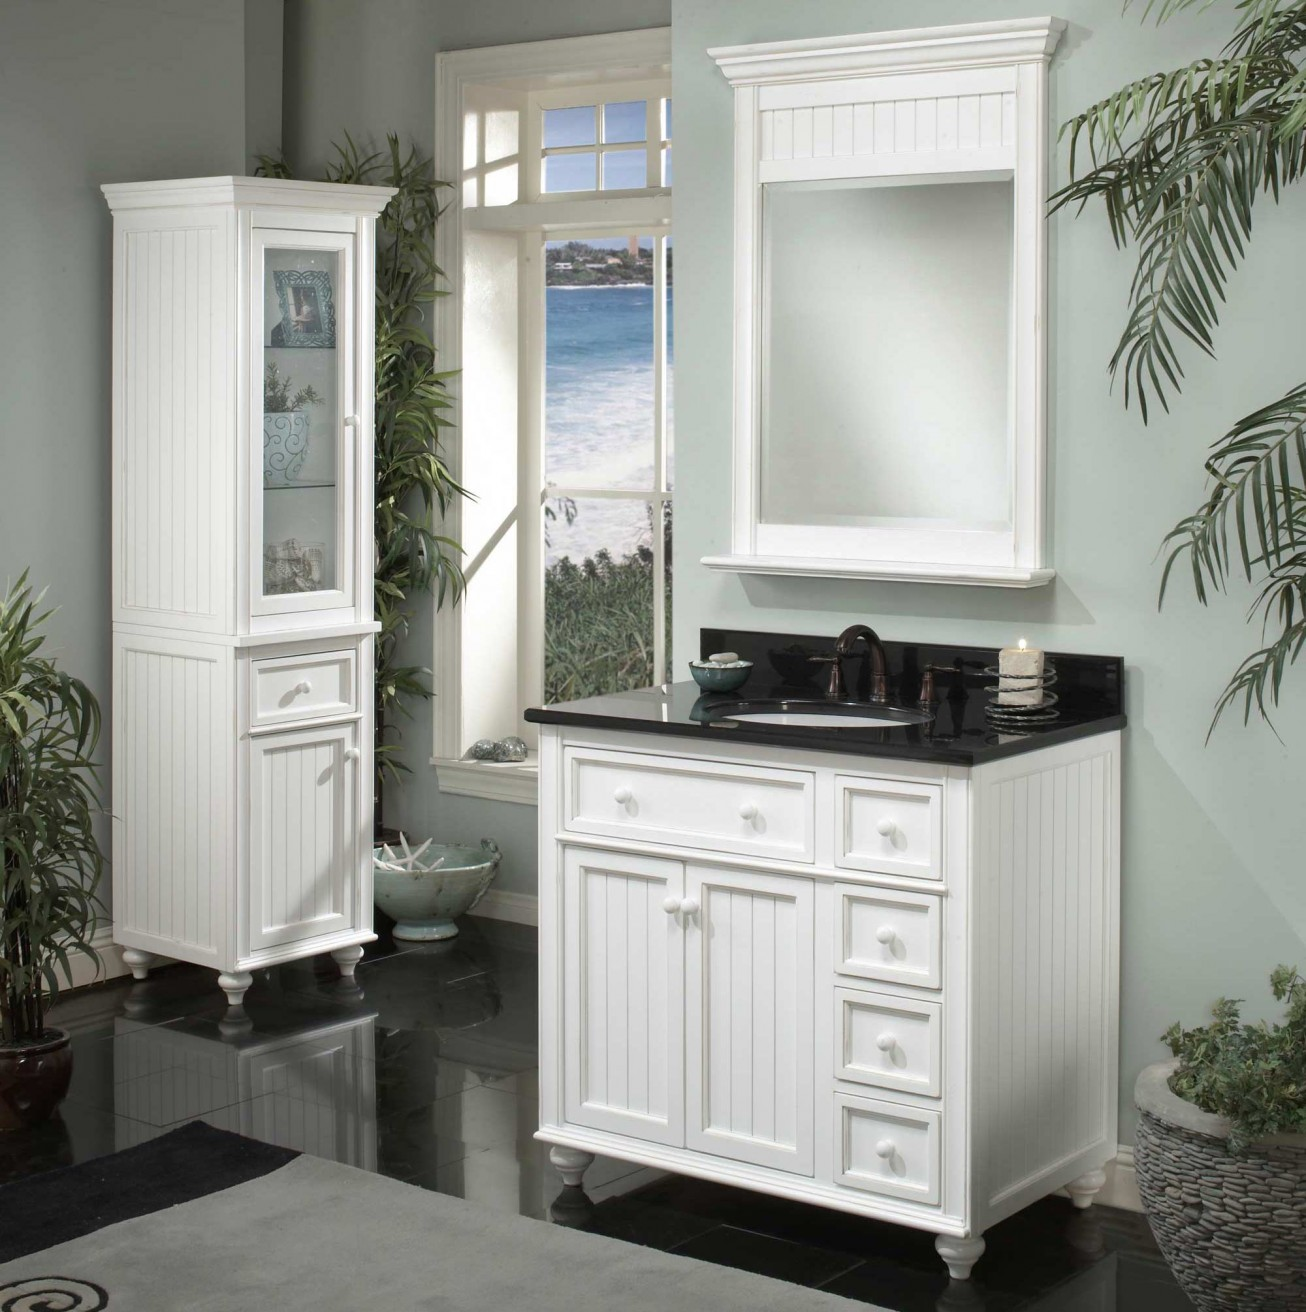 Bathroom Inspiring Lowes Bathroom Lighting With Lovable Design - Black mirrored bathroom cabinet for bathroom decor ideas